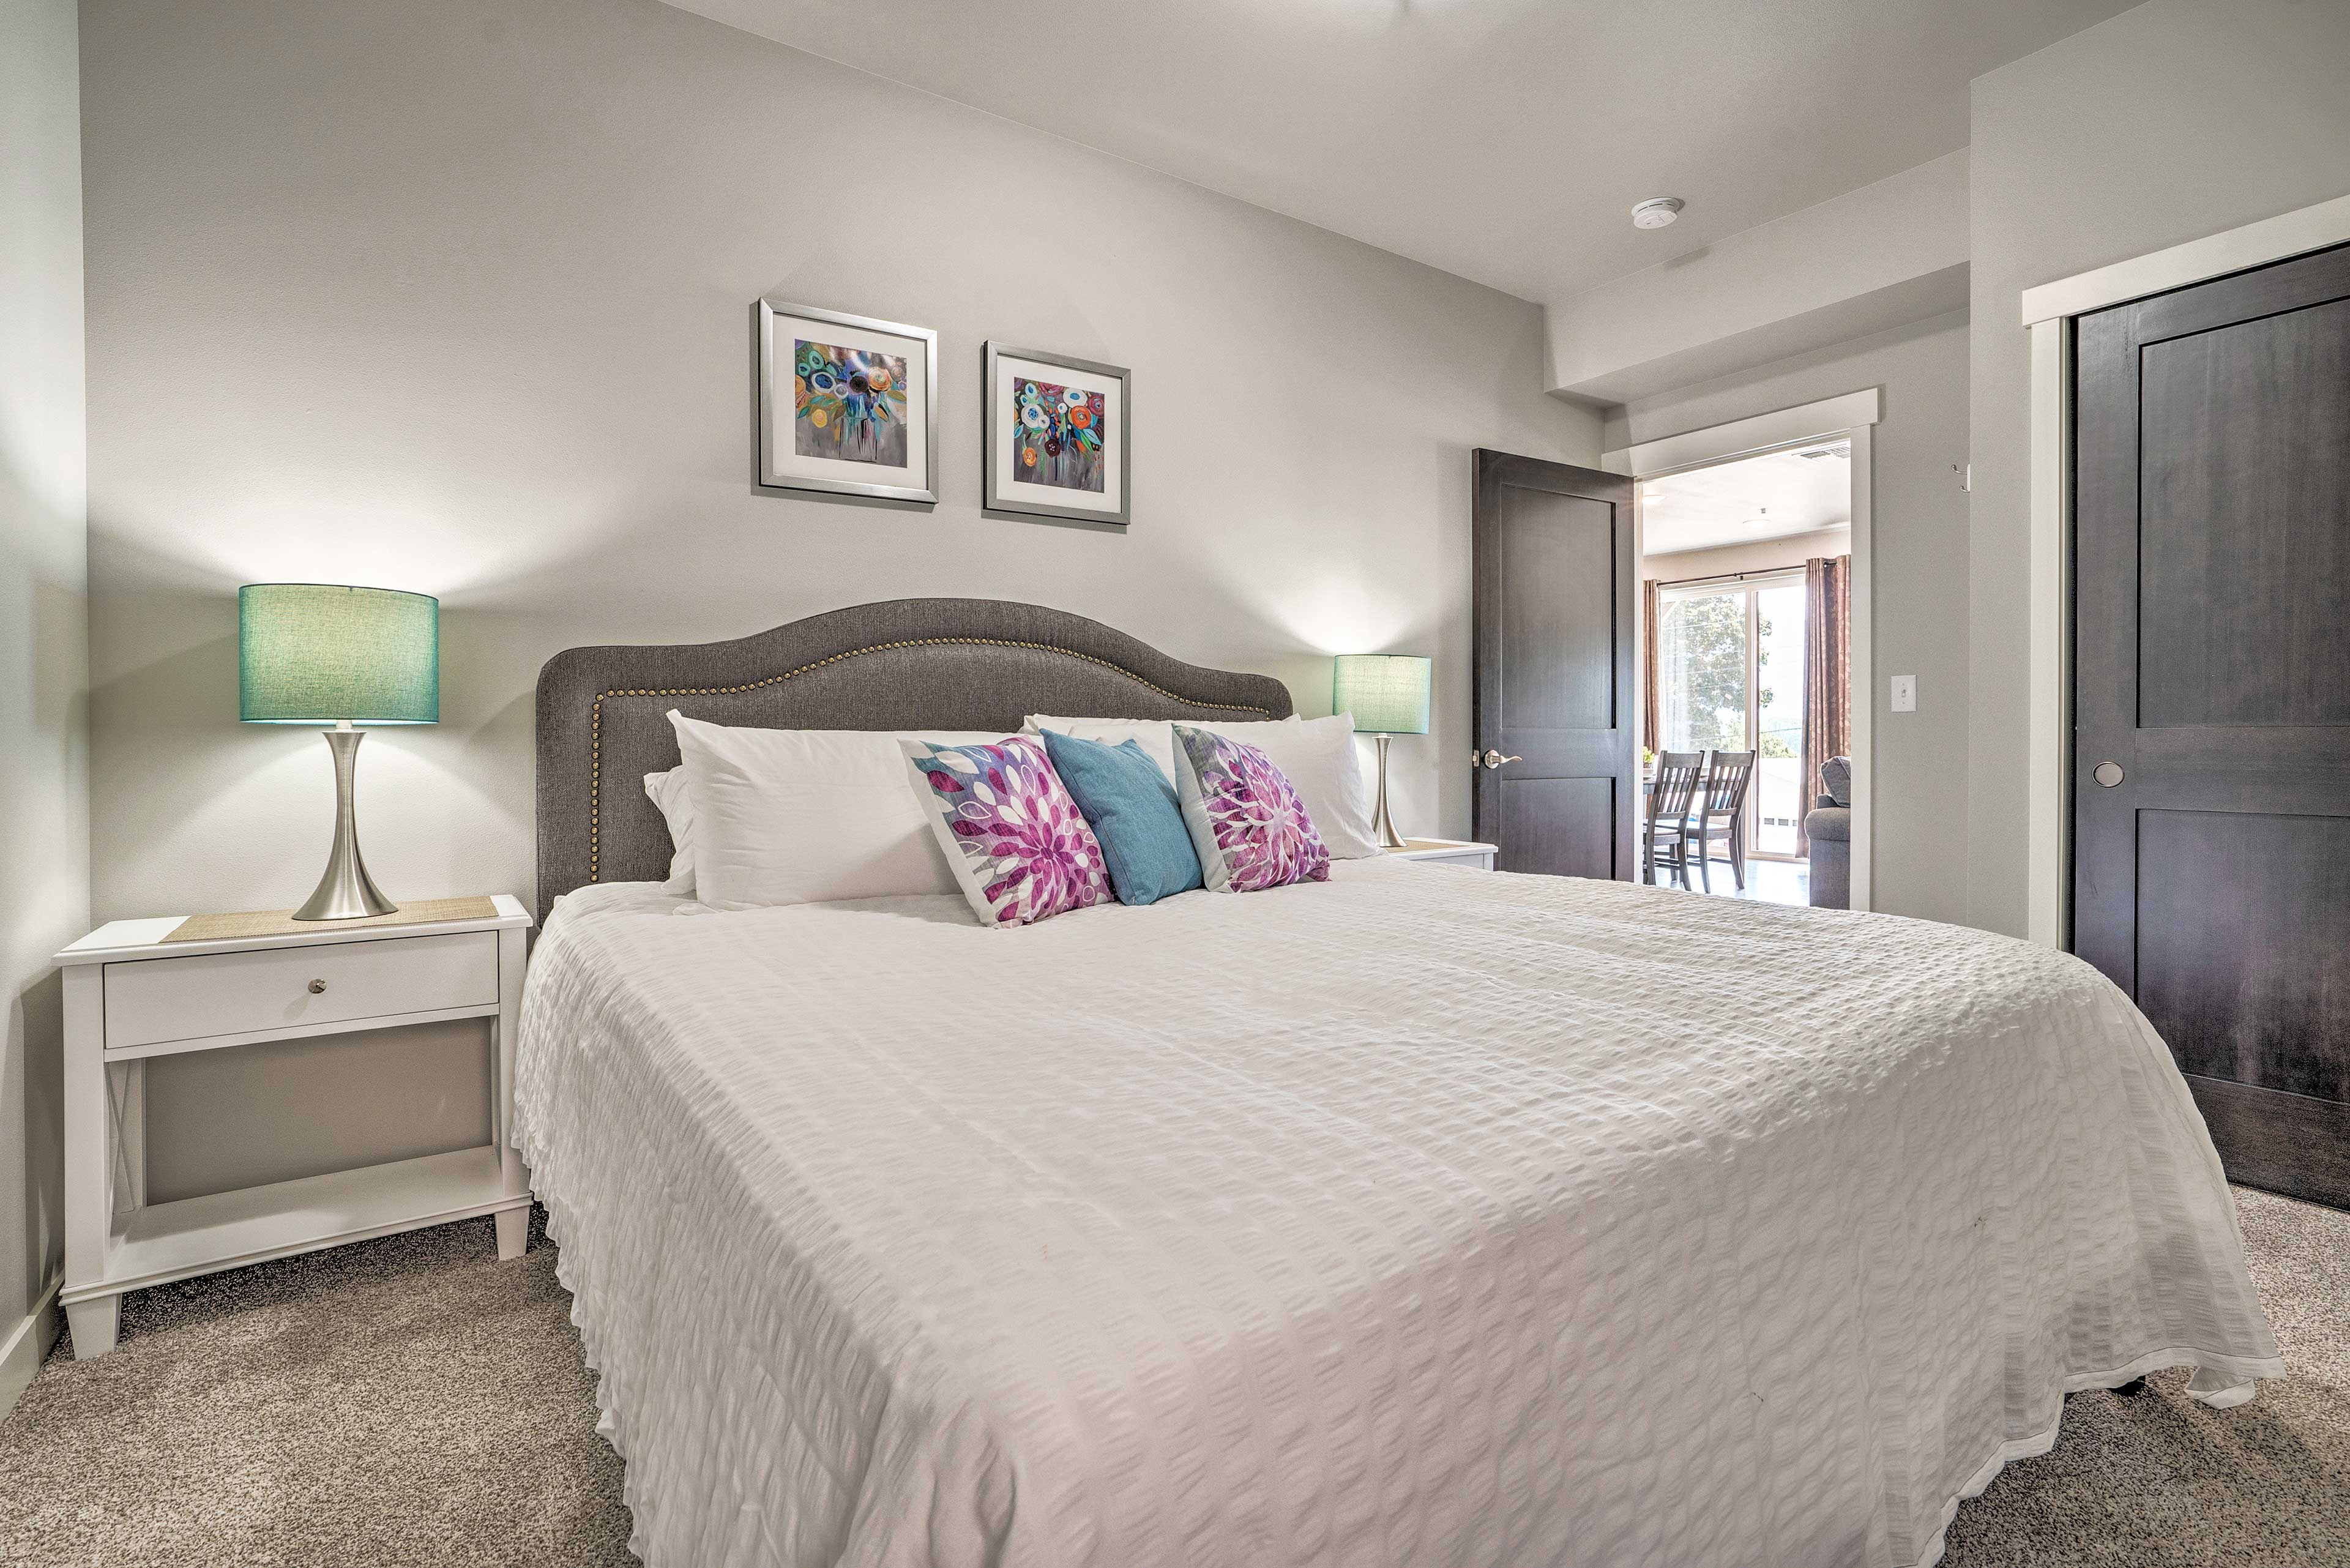 You'll find a king bed in this first bedroom.